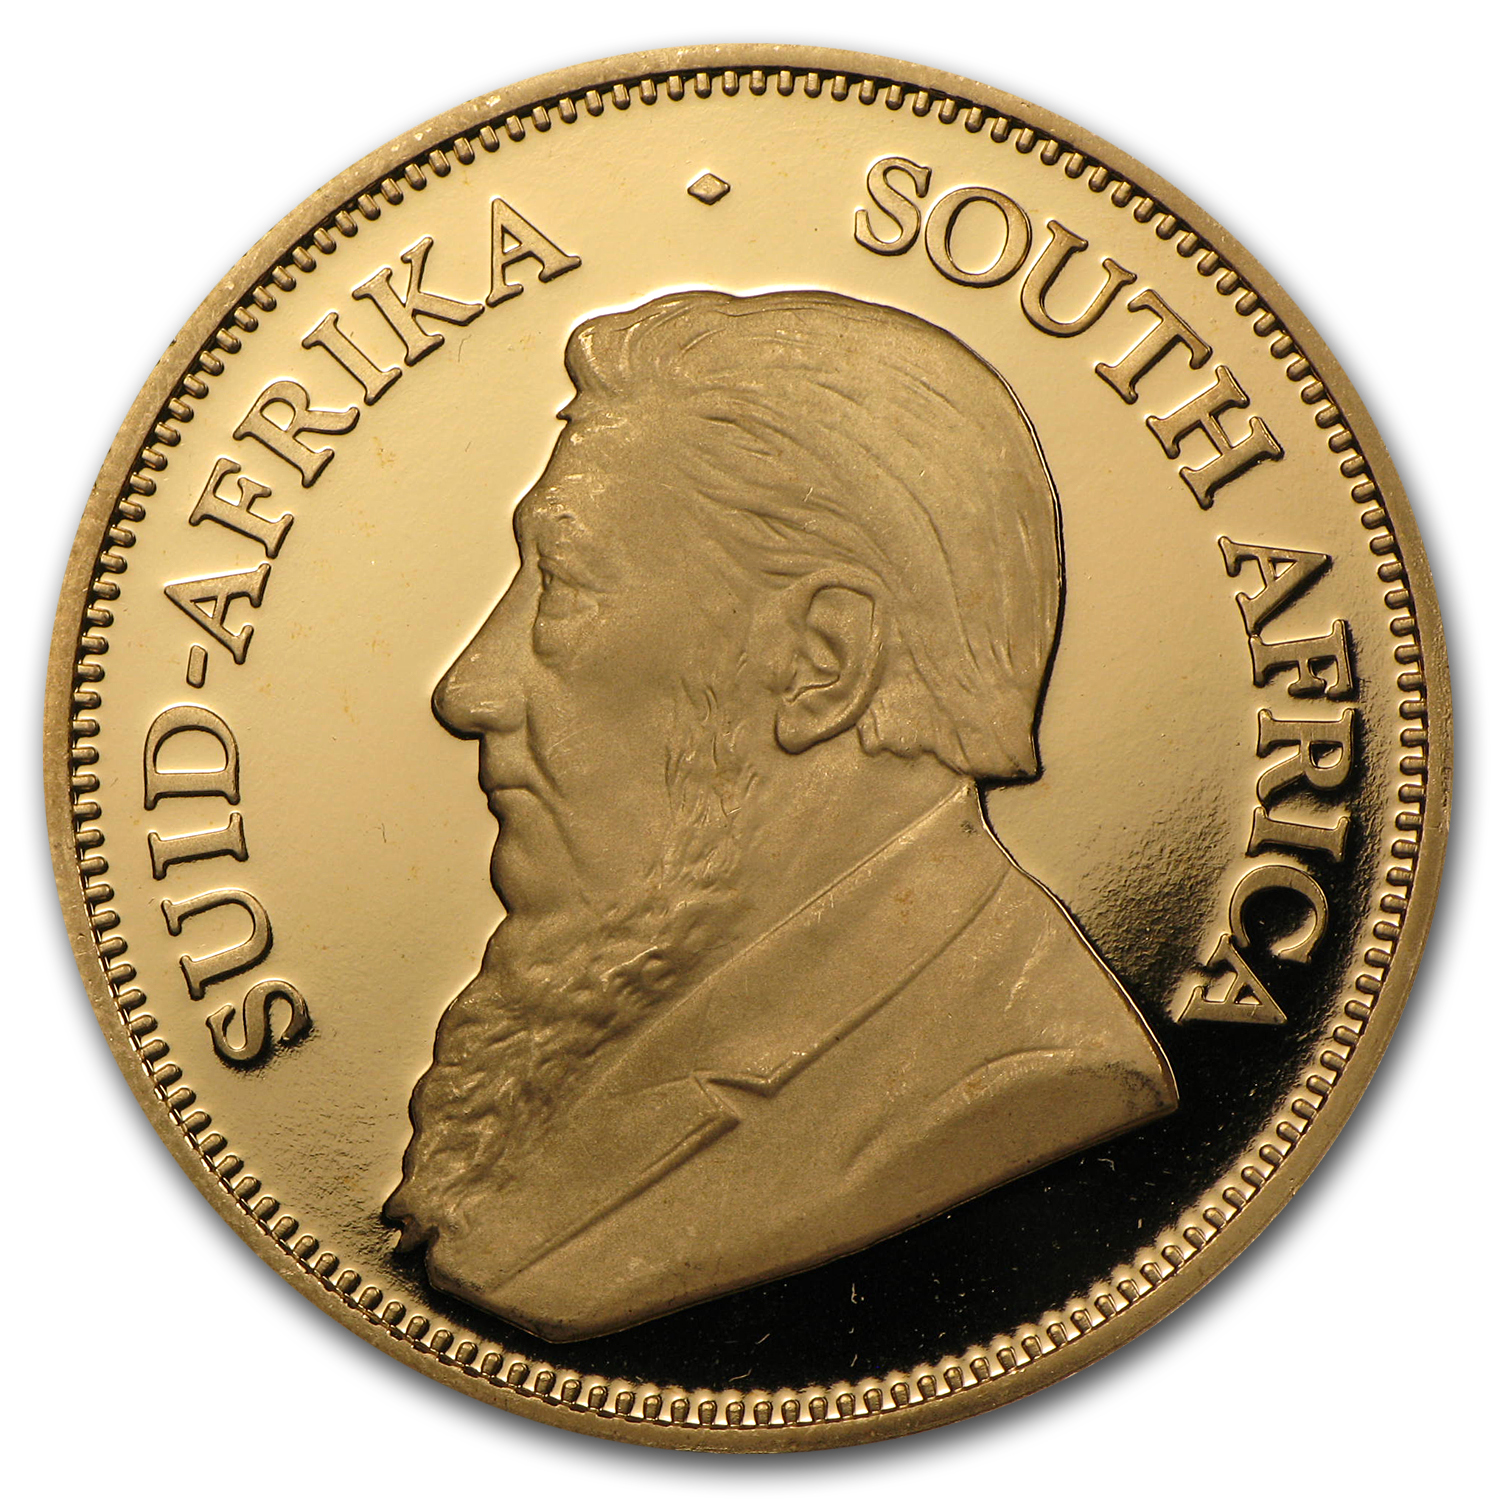 2006 South Africa 1 oz Proof Gold Krugerrand